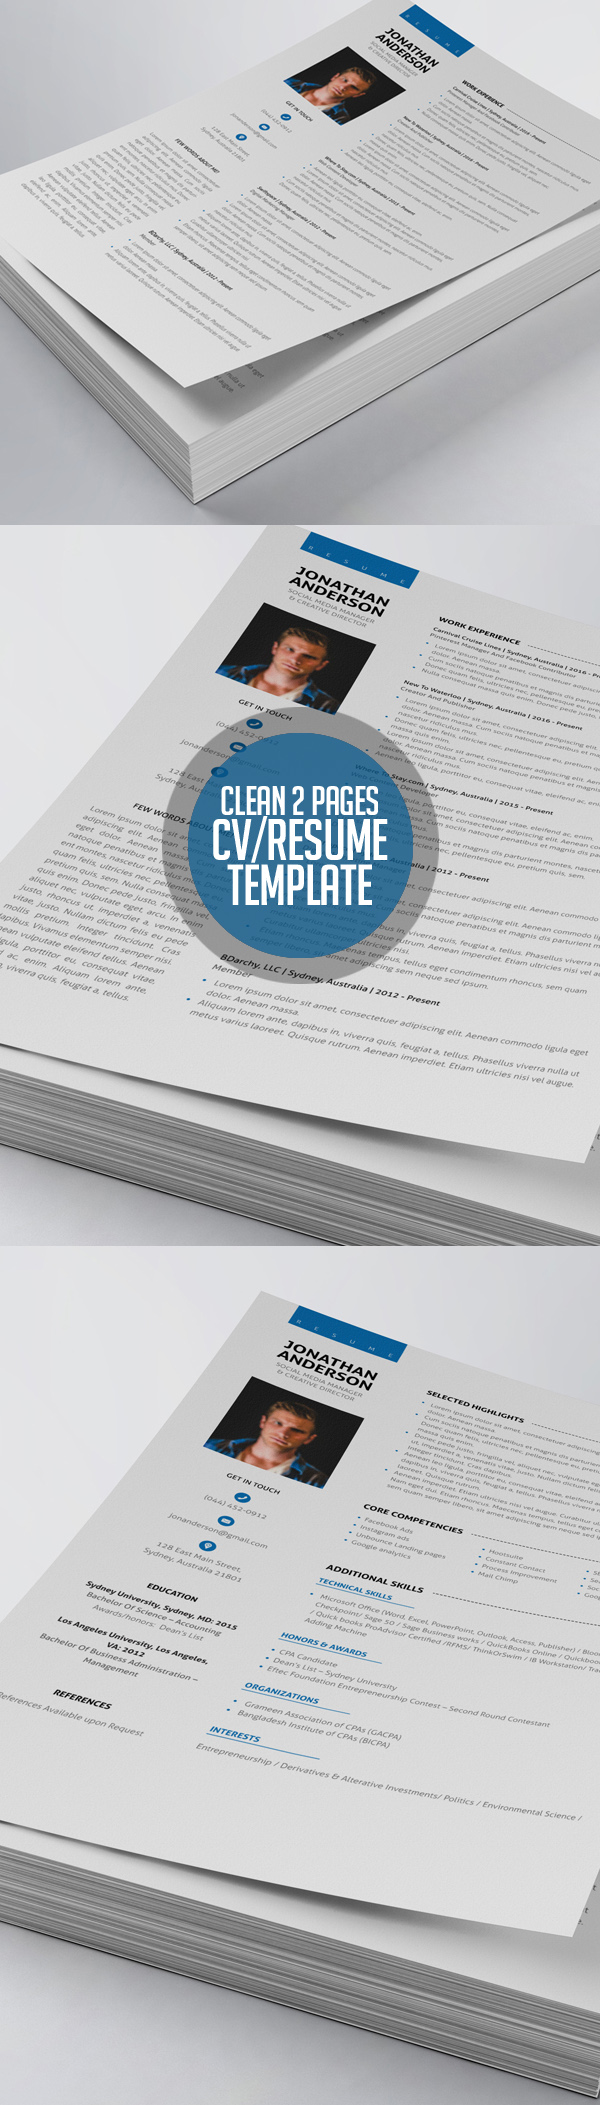 Clean 2 Pages CV/Resume Template